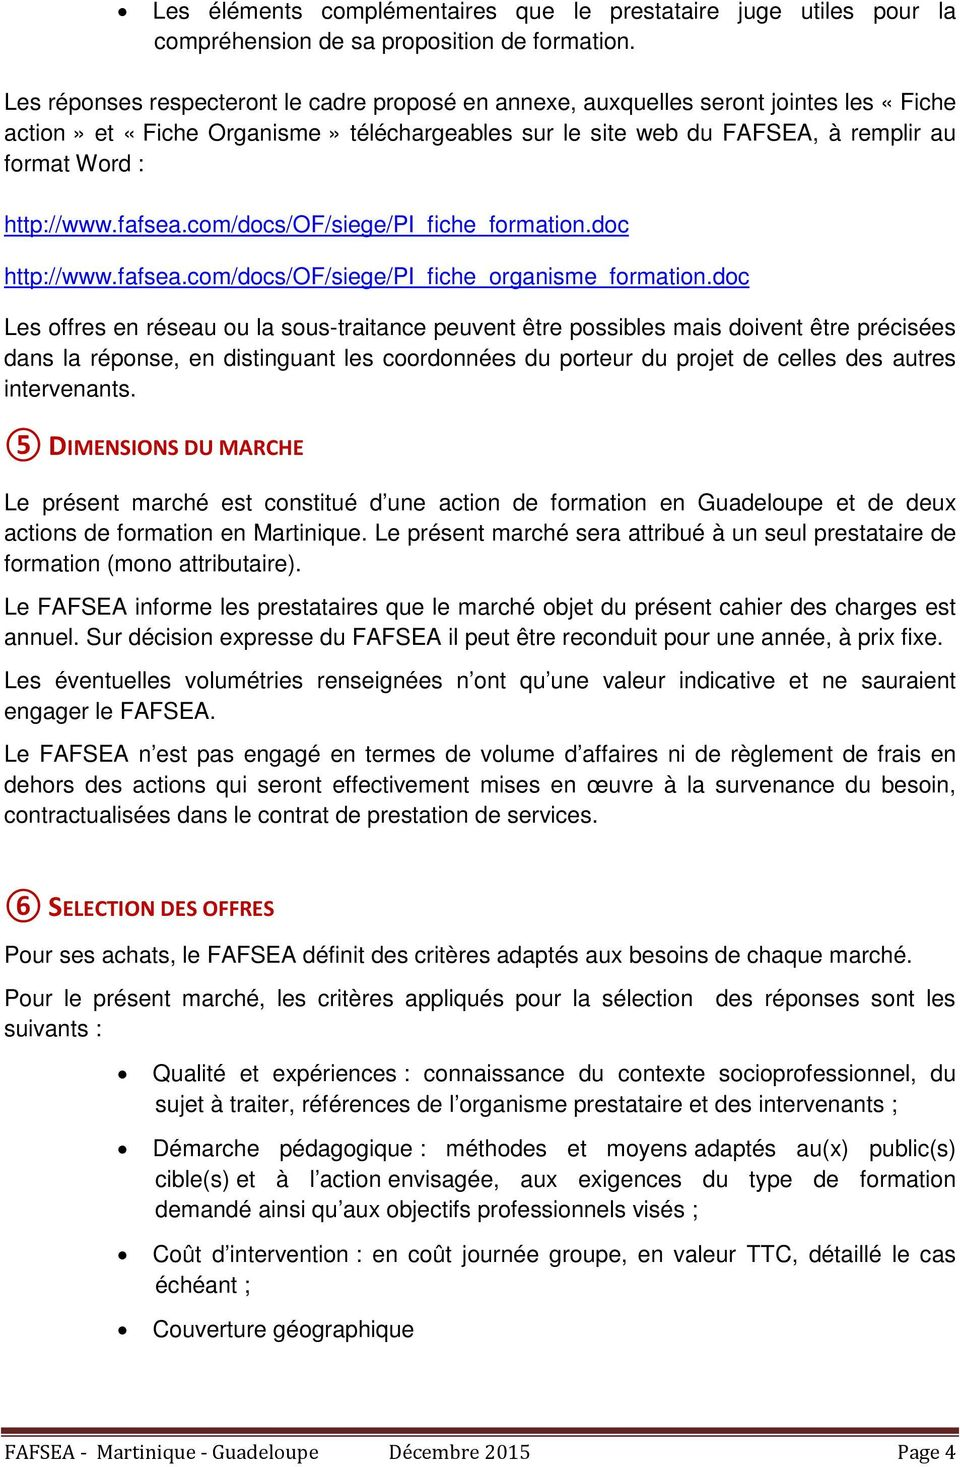 http://www.fafsea.com/docs/of/siege/pi_fiche_formation.doc http://www.fafsea.com/docs/of/siege/pi_fiche_organisme_formation.